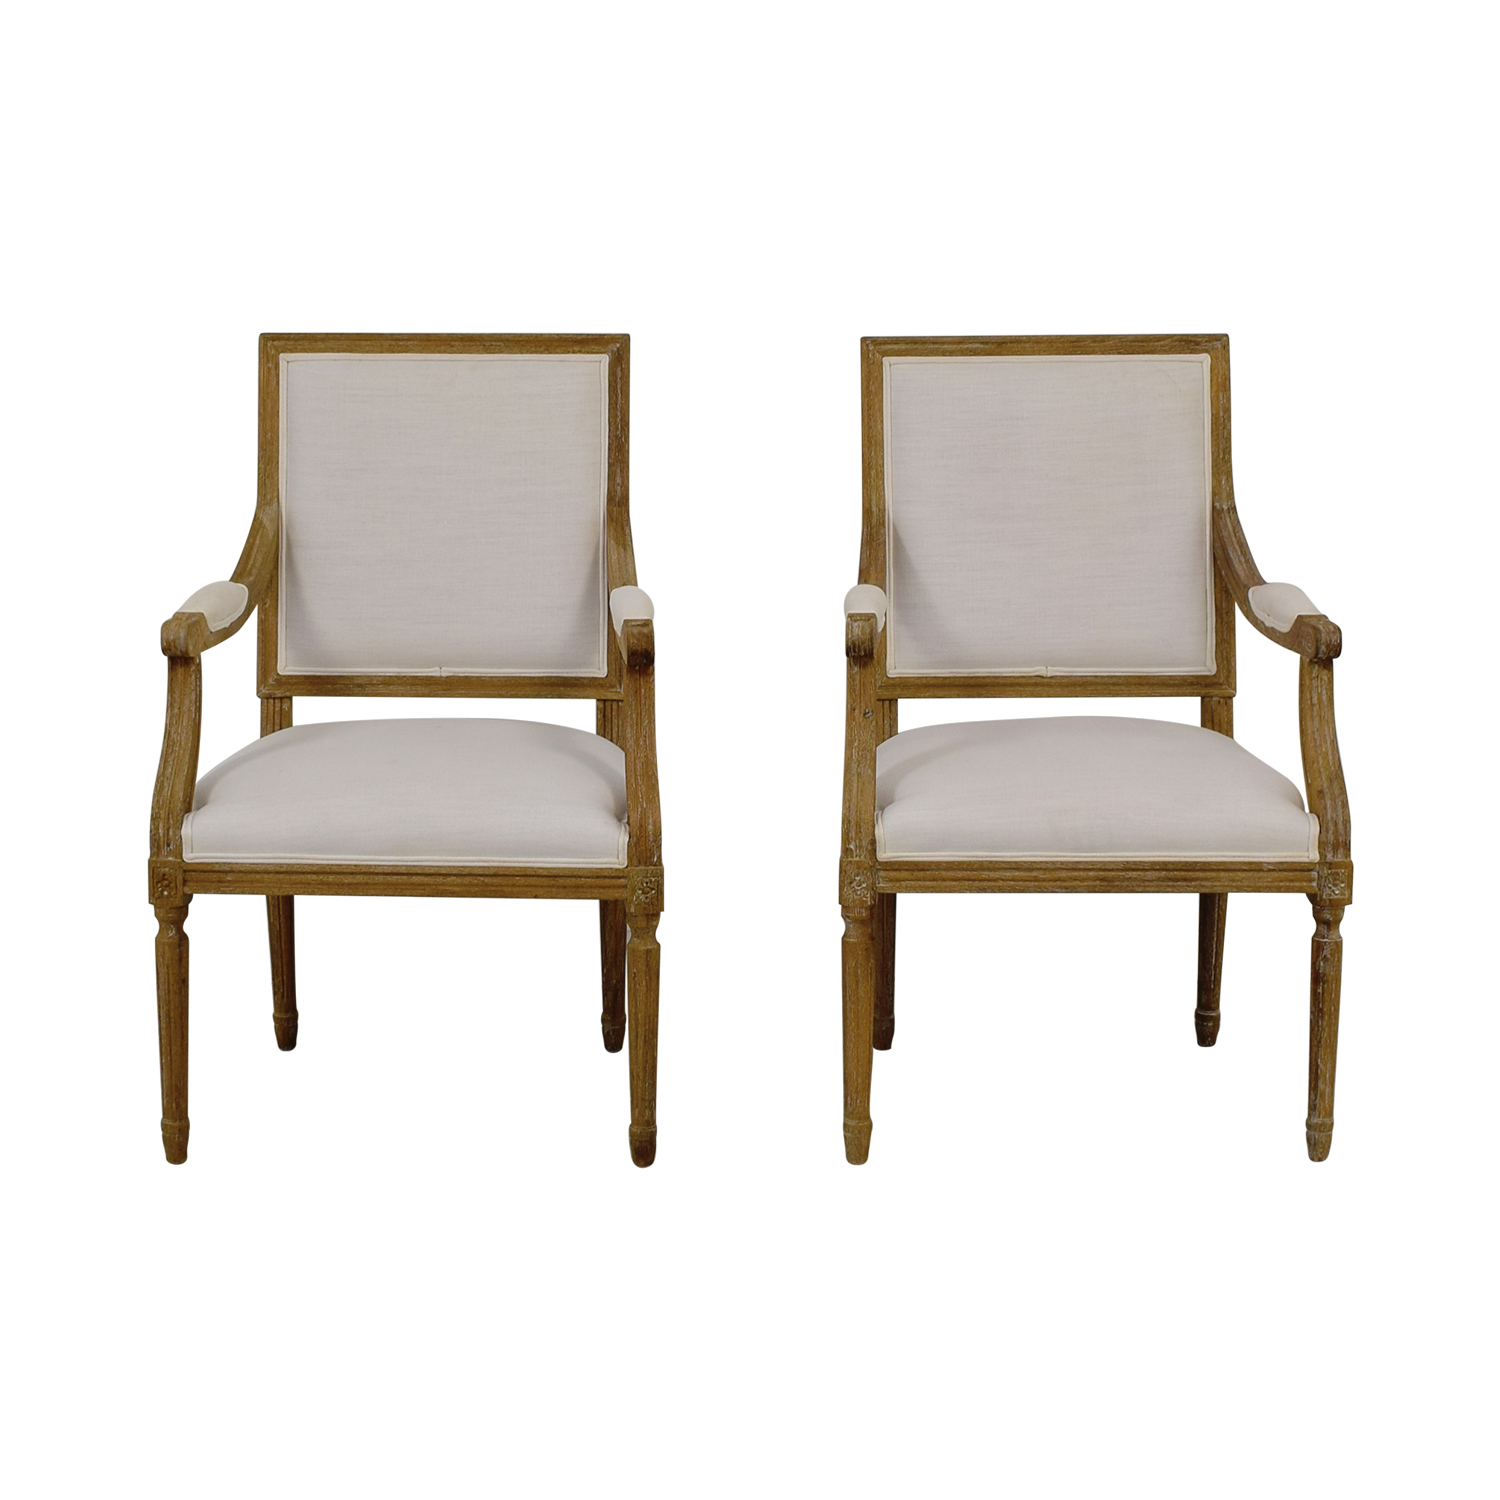 buy Wisteria Chateau White Upholstered Rustic Wood Armchairs Wisteria